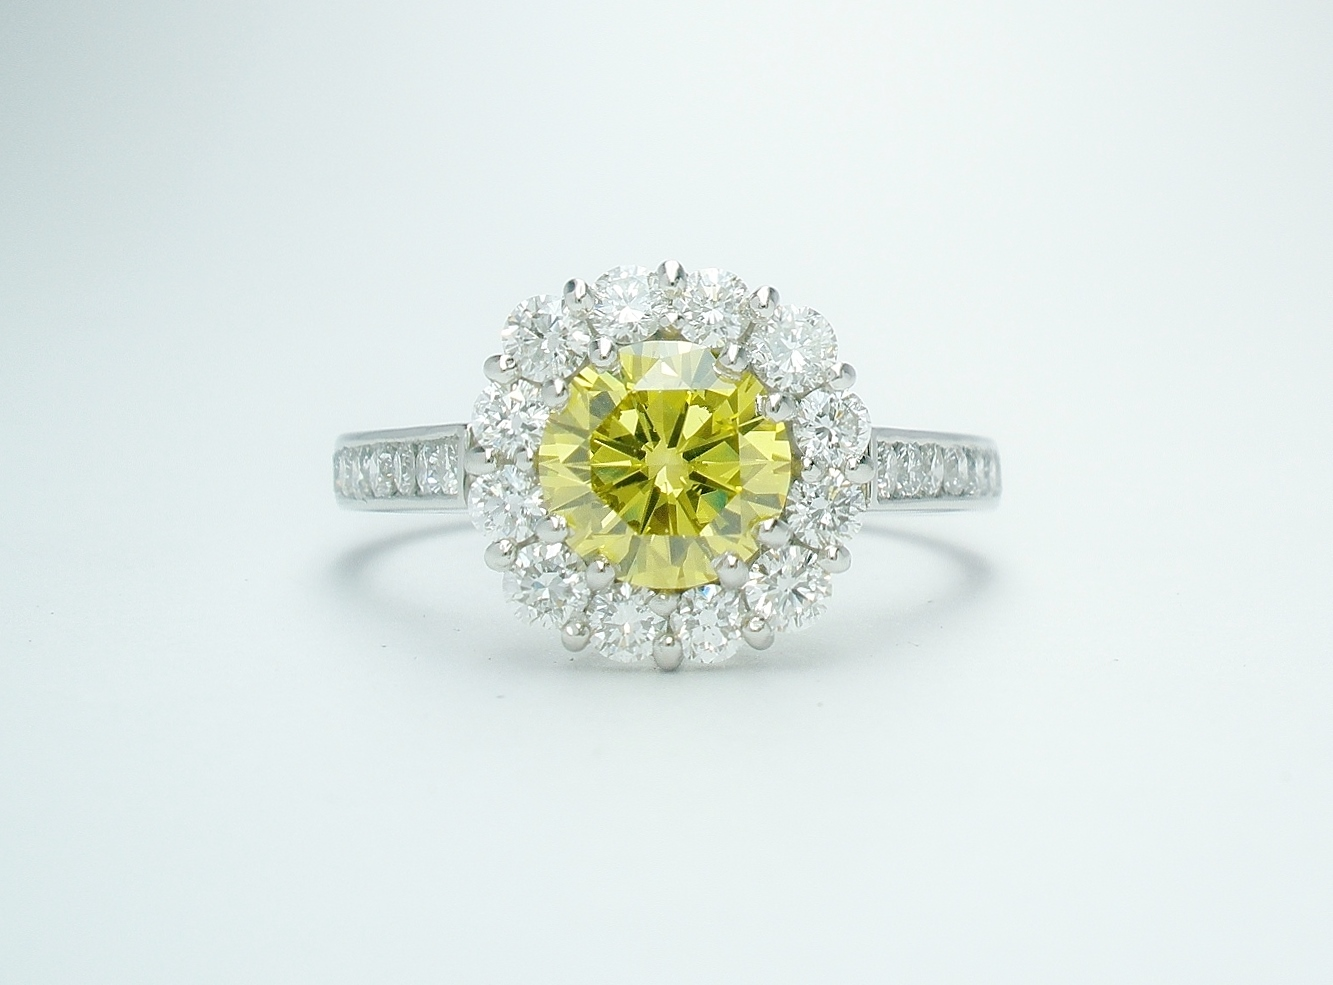 A 13 stone round brilliant cut 'HPHT' canary yellow diamond and white diamond round cluster with 7 round diamonds channel set down each shoulder.